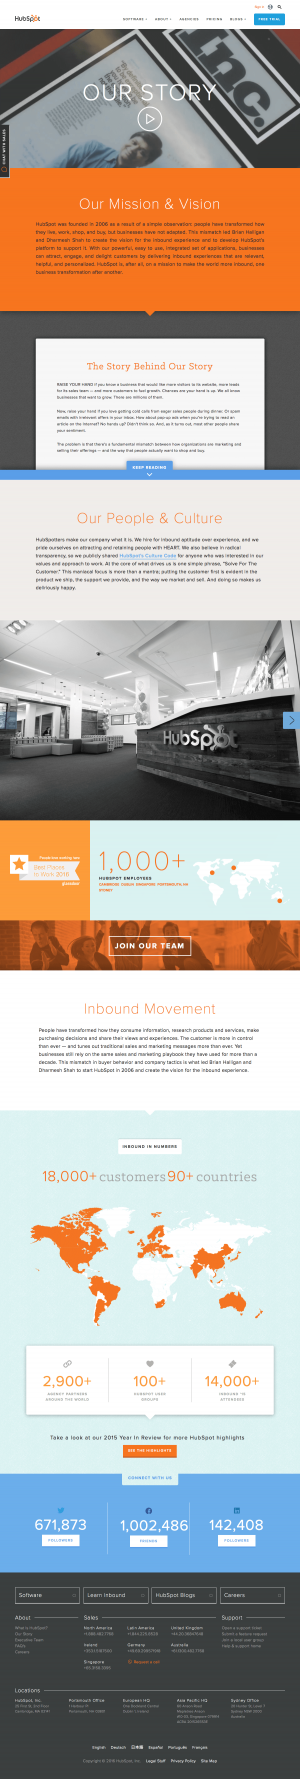 About us page inspiration - Hubspot